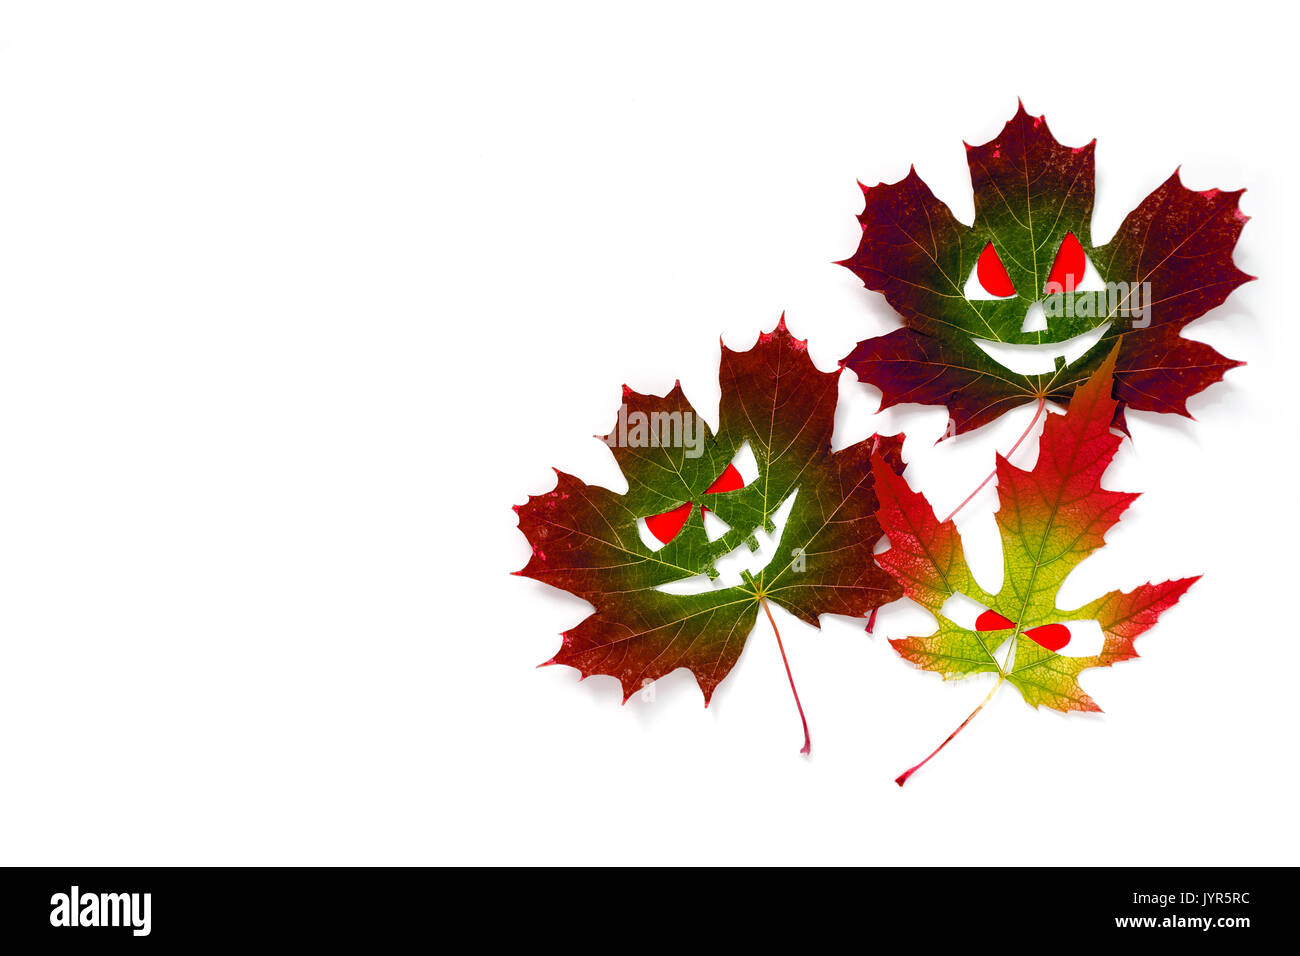 Halloween background - colored autumn maple leaves in the form of faces with red eyes. White background. Place for Stock Photo